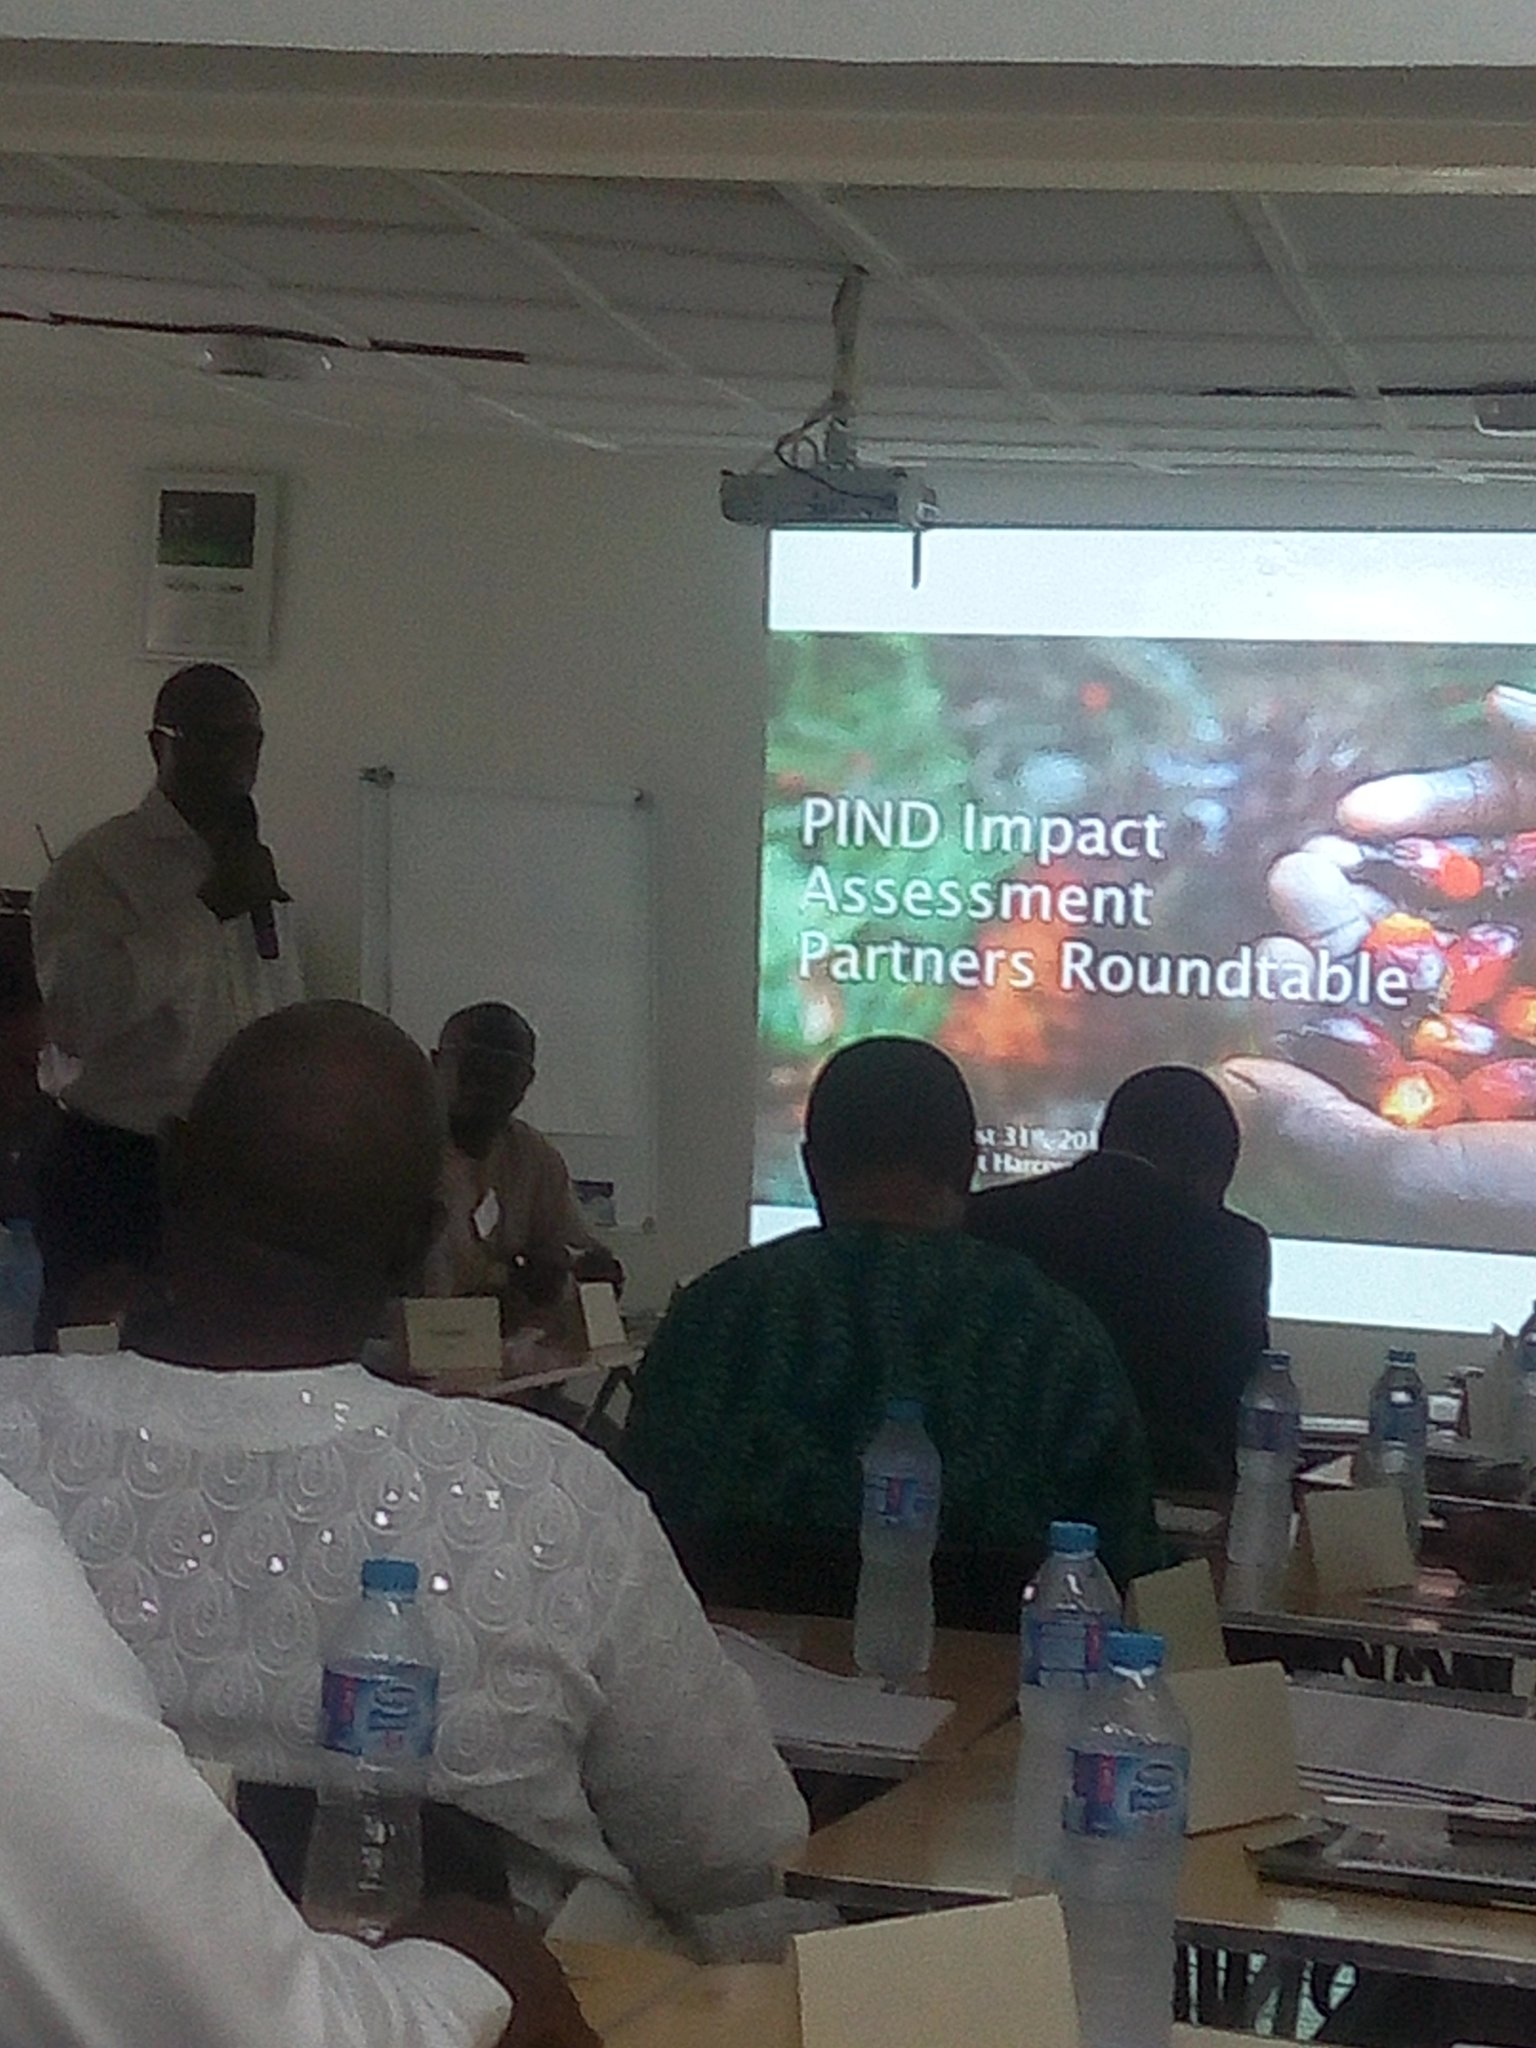 @PINDFoundation's Programs Director Dara Akala giving a background on the #NDImpact and PIND's work so far https://t.co/jUGn7rWKqn